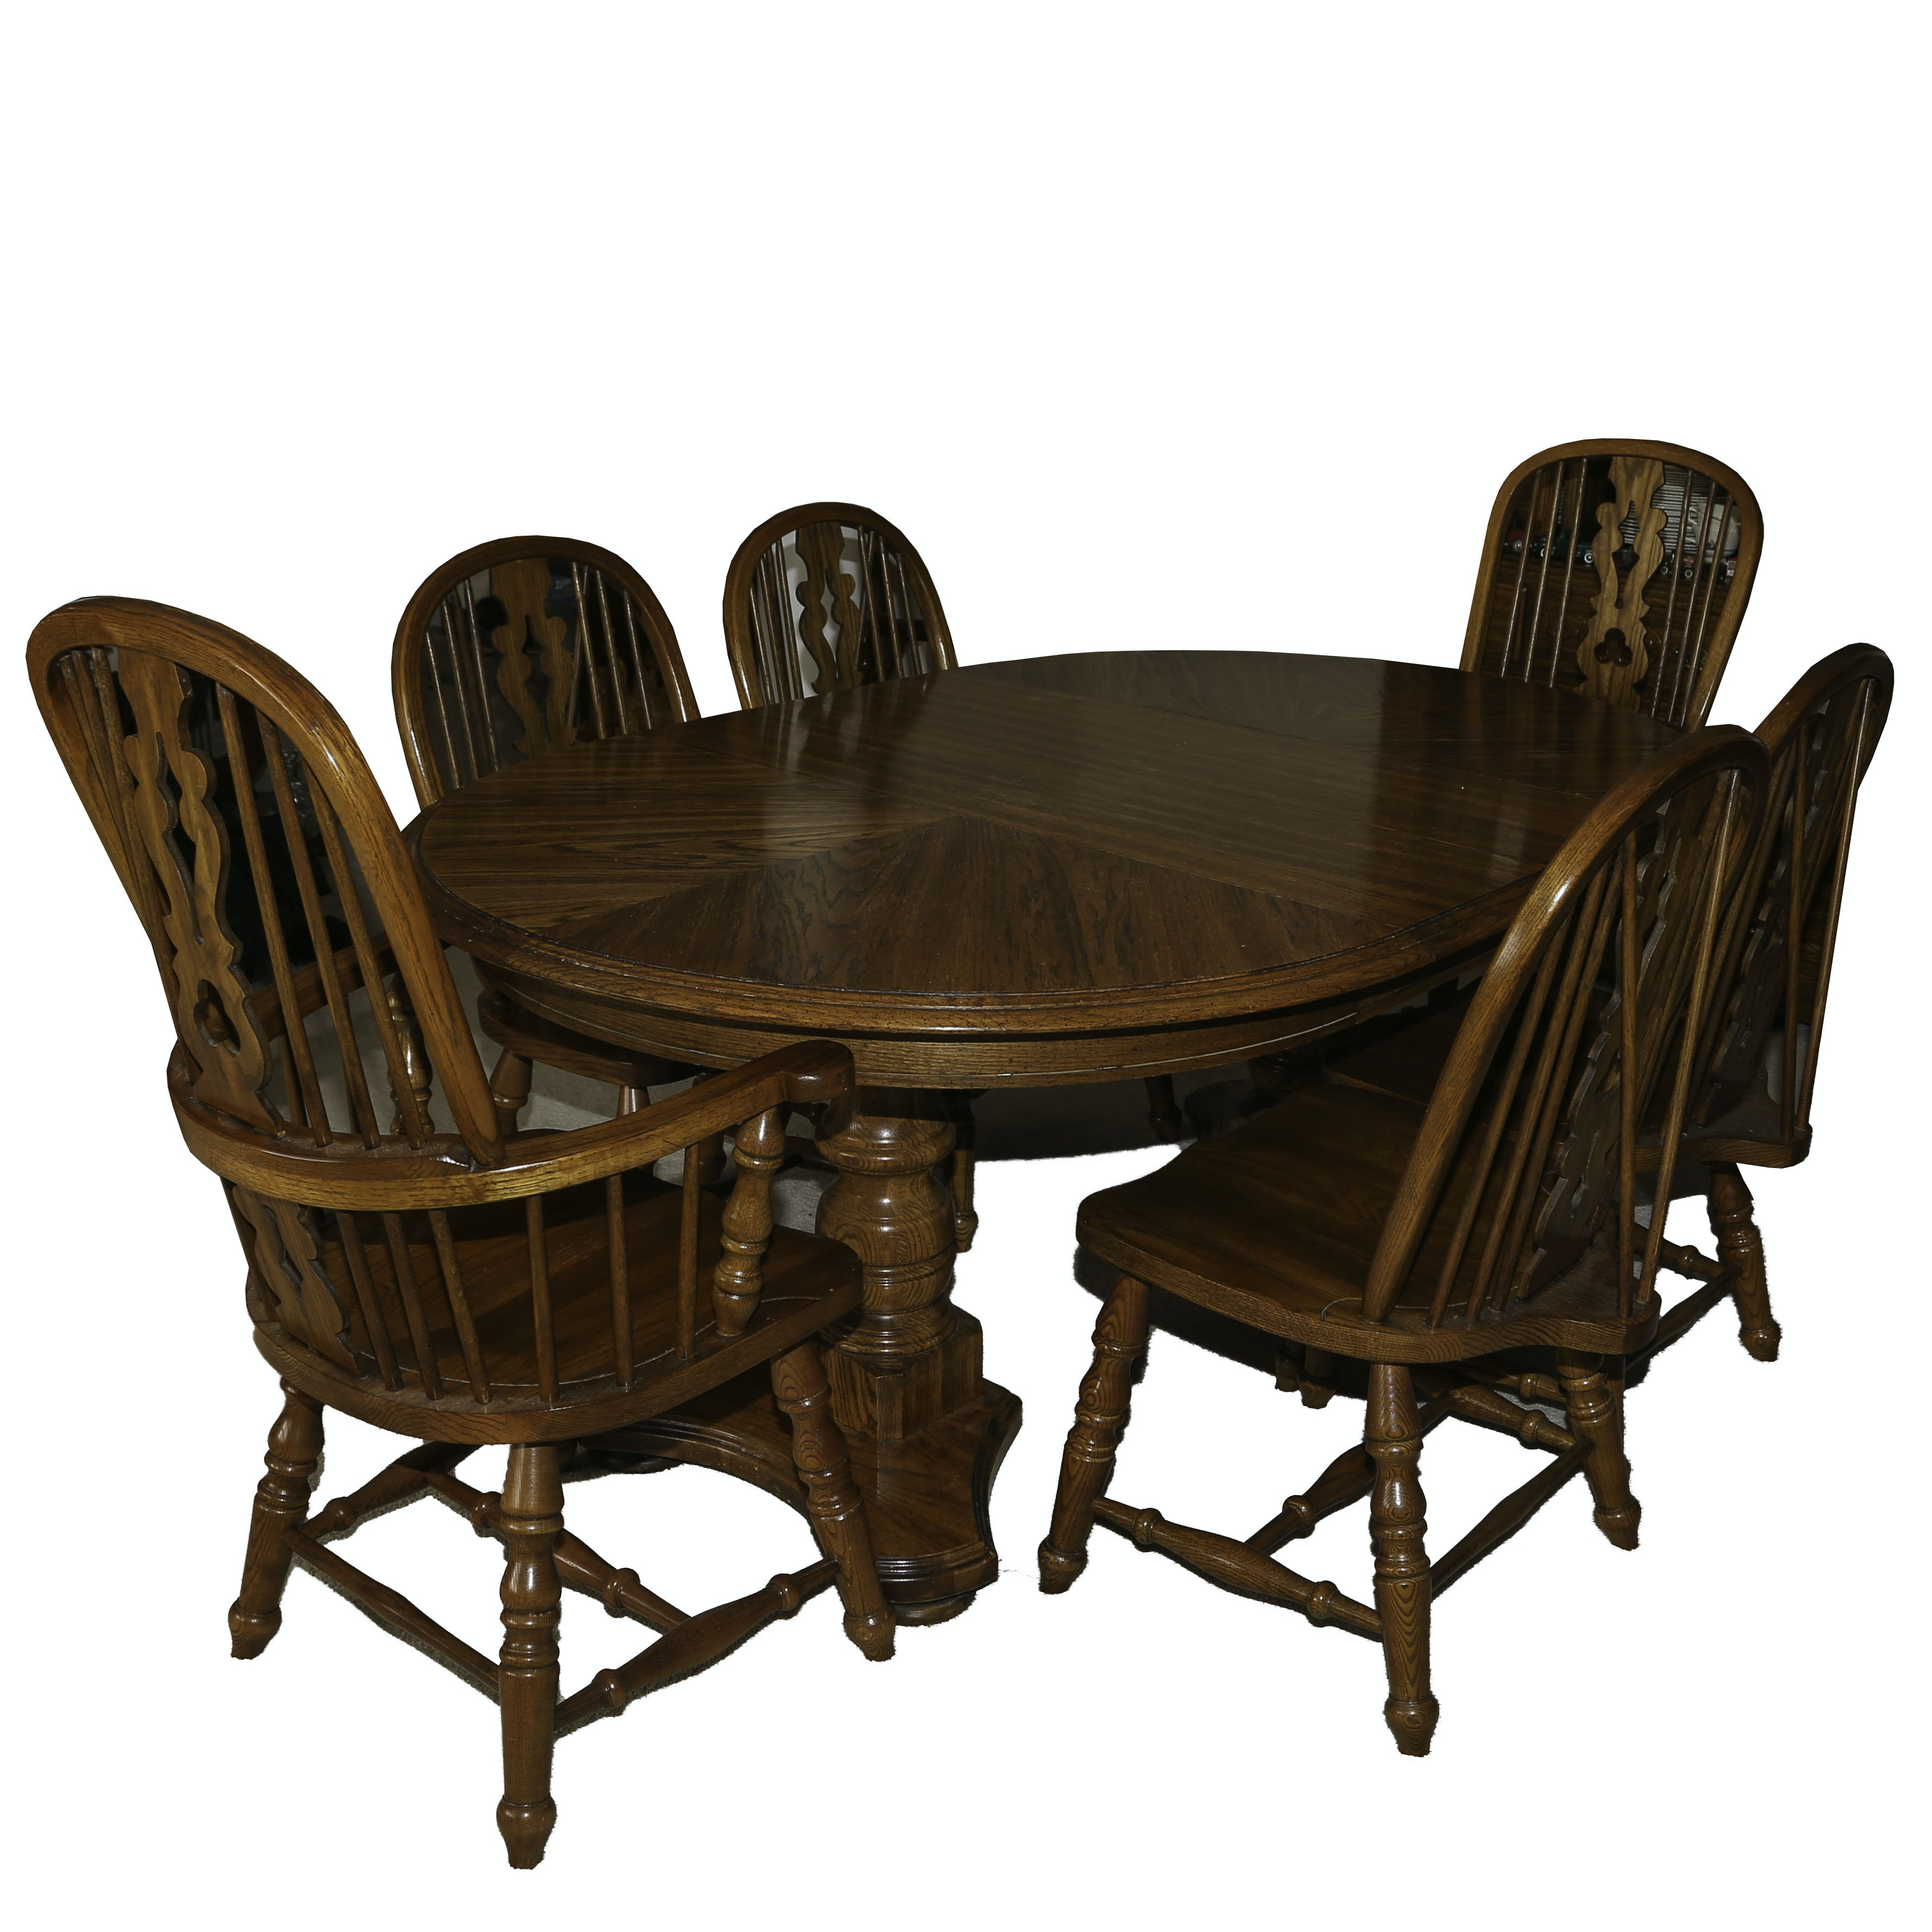 Oak Double Pedestal Dining Table & Wheel Back Spindle Chairs, 20th Century